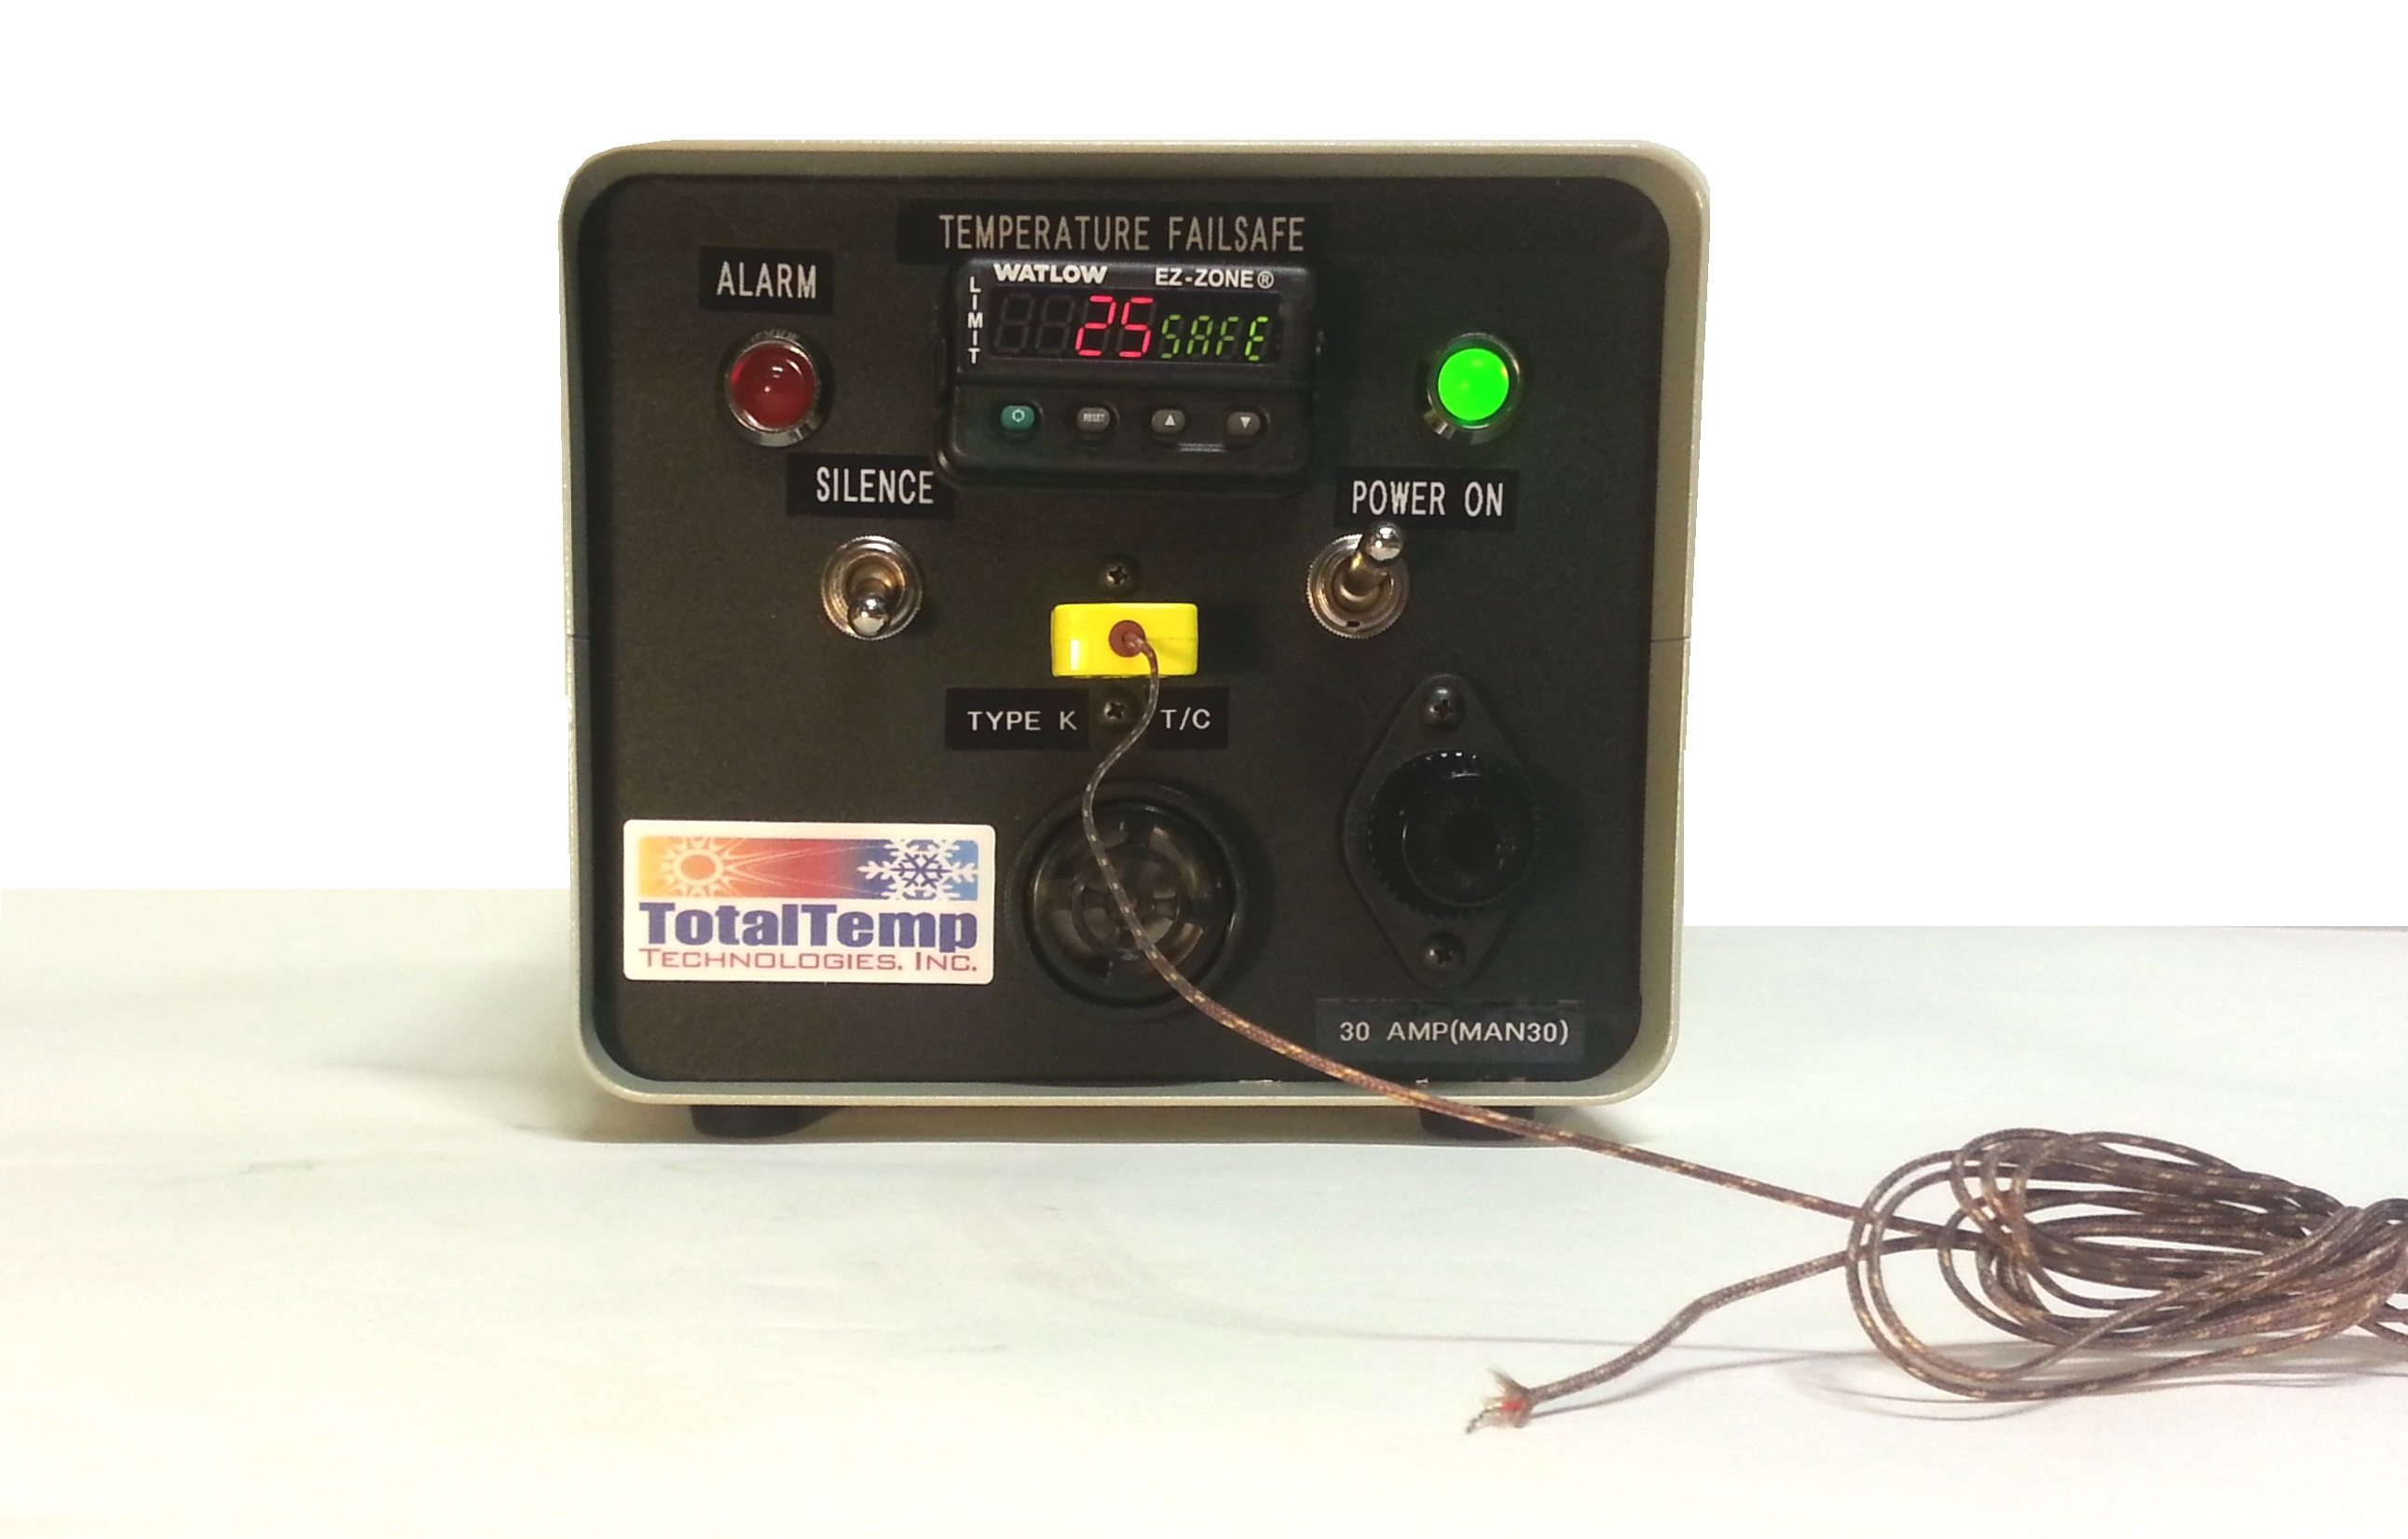 Limit Controller (Independent Failsafe) Has 4 AC Power outlets on the rear that lose power when fail-safe event occurs. Shown here using a Type K Thermocouple